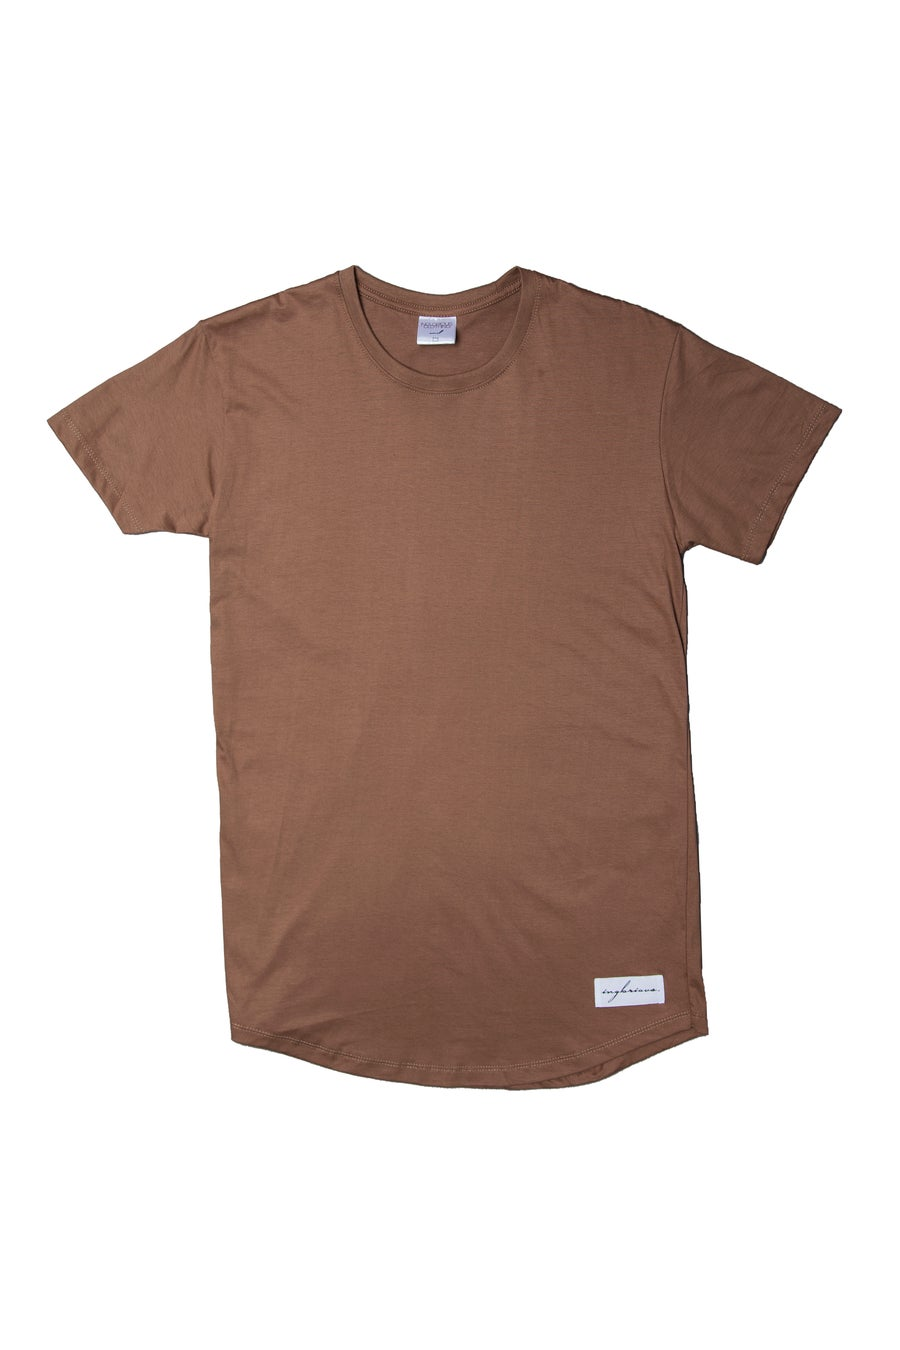 Image of Inglorious Curved Hem (Camel)